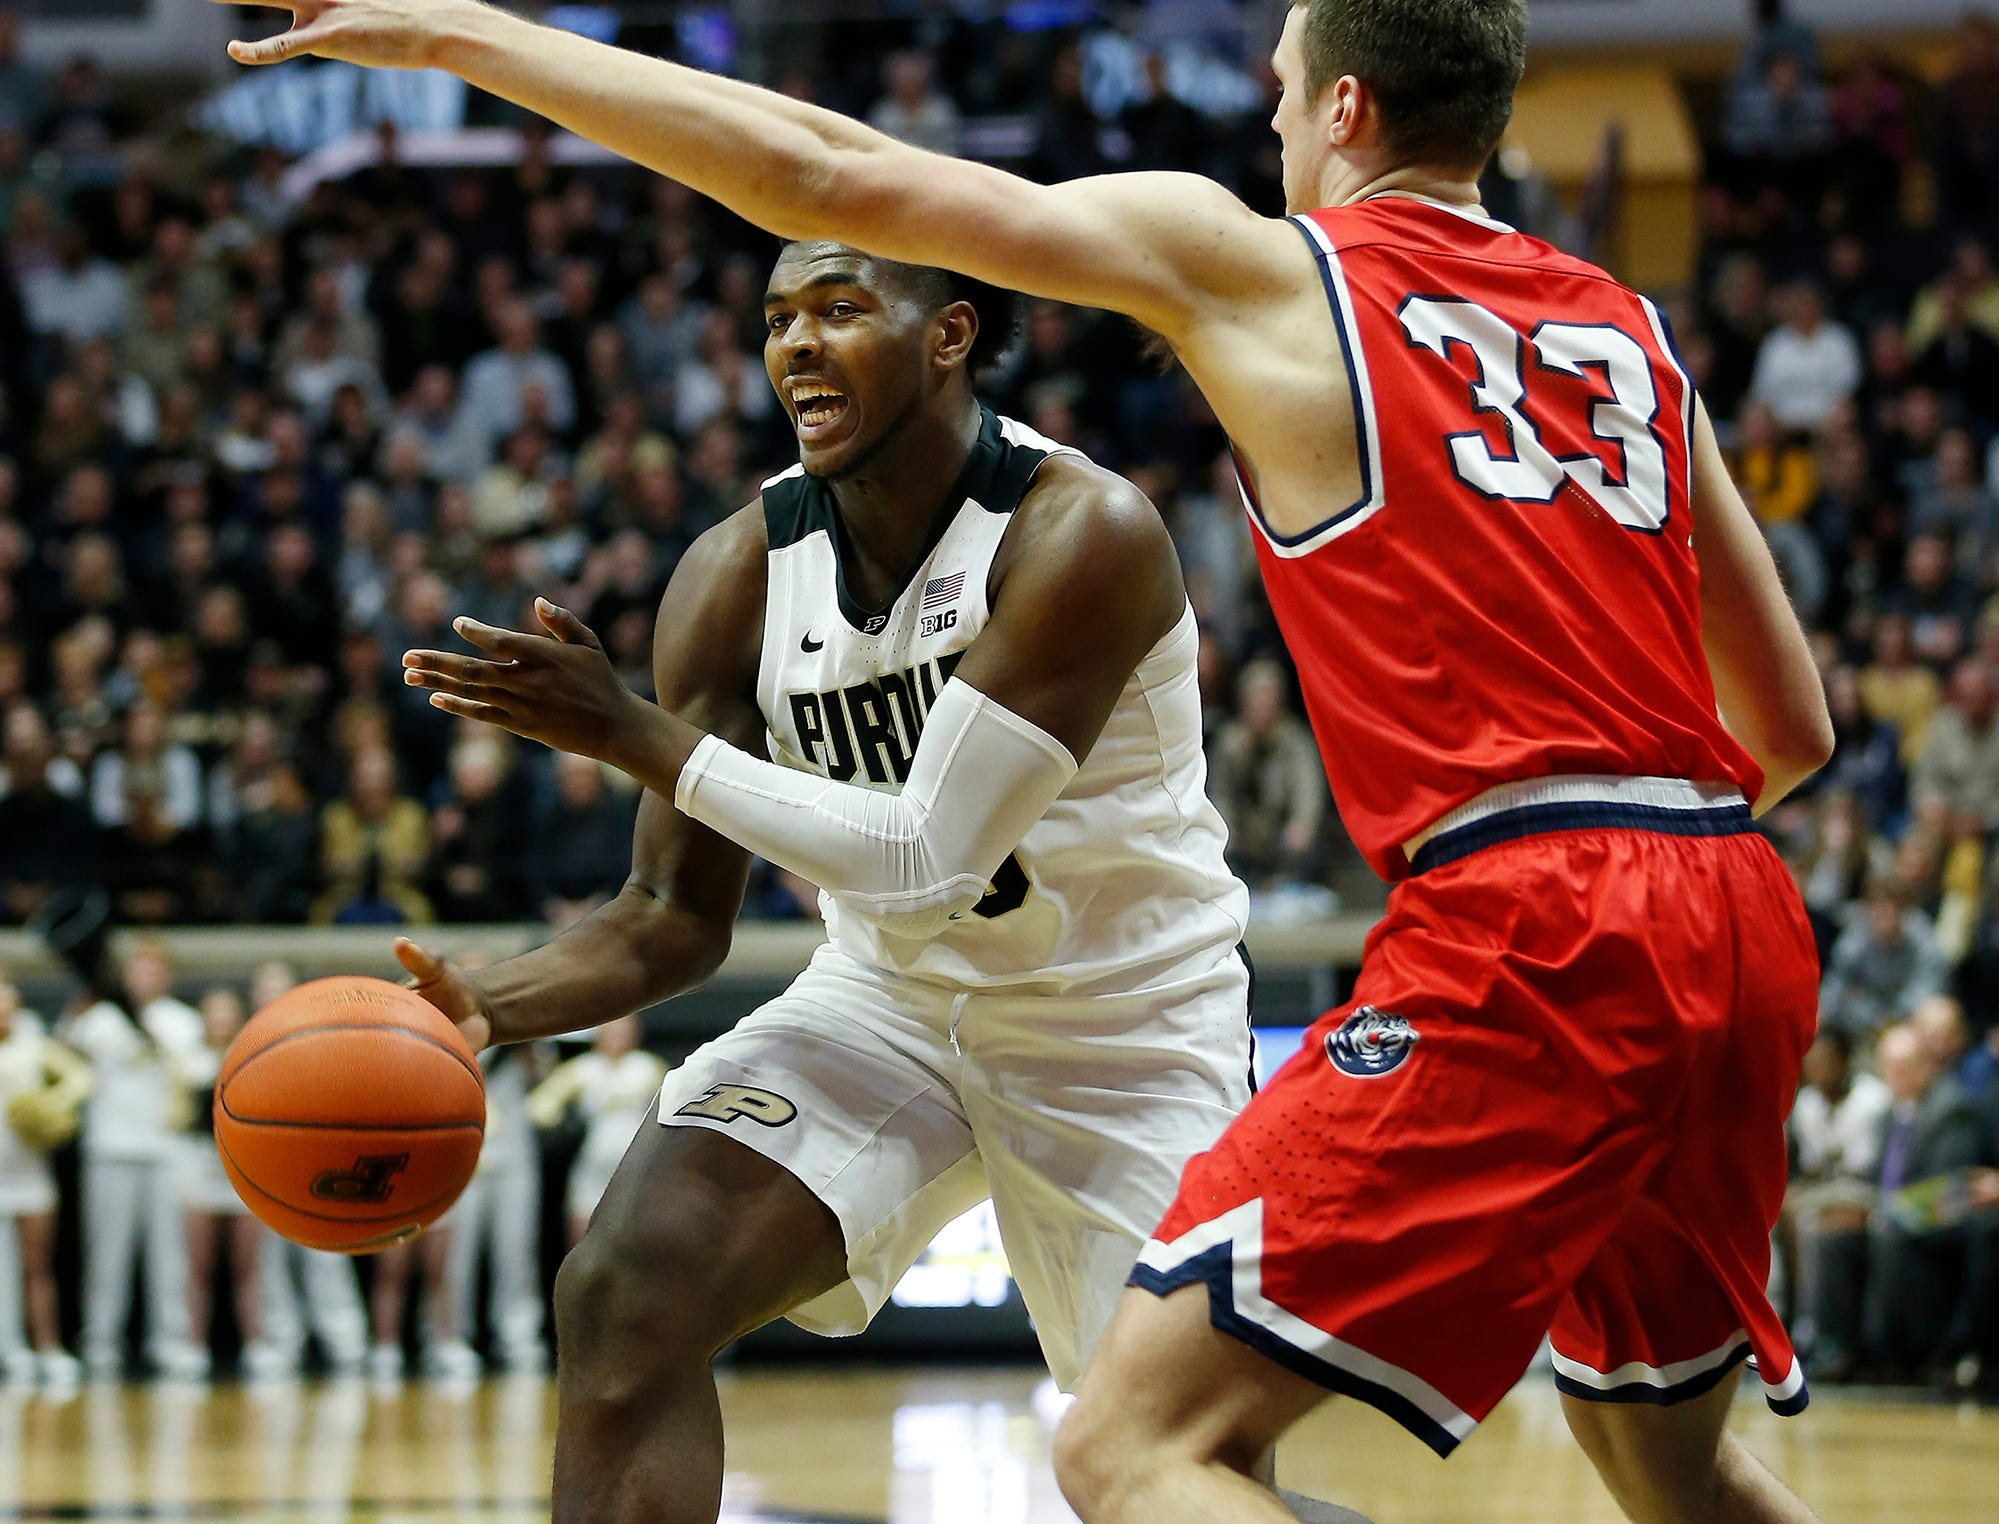 Trevion Williams of Purdue slips a pass beneath the arm of Nick Muszynski of Belmont Saturday, December 29, 2018, at Mackey Arena. Purdue defeated Belmont 73-62.